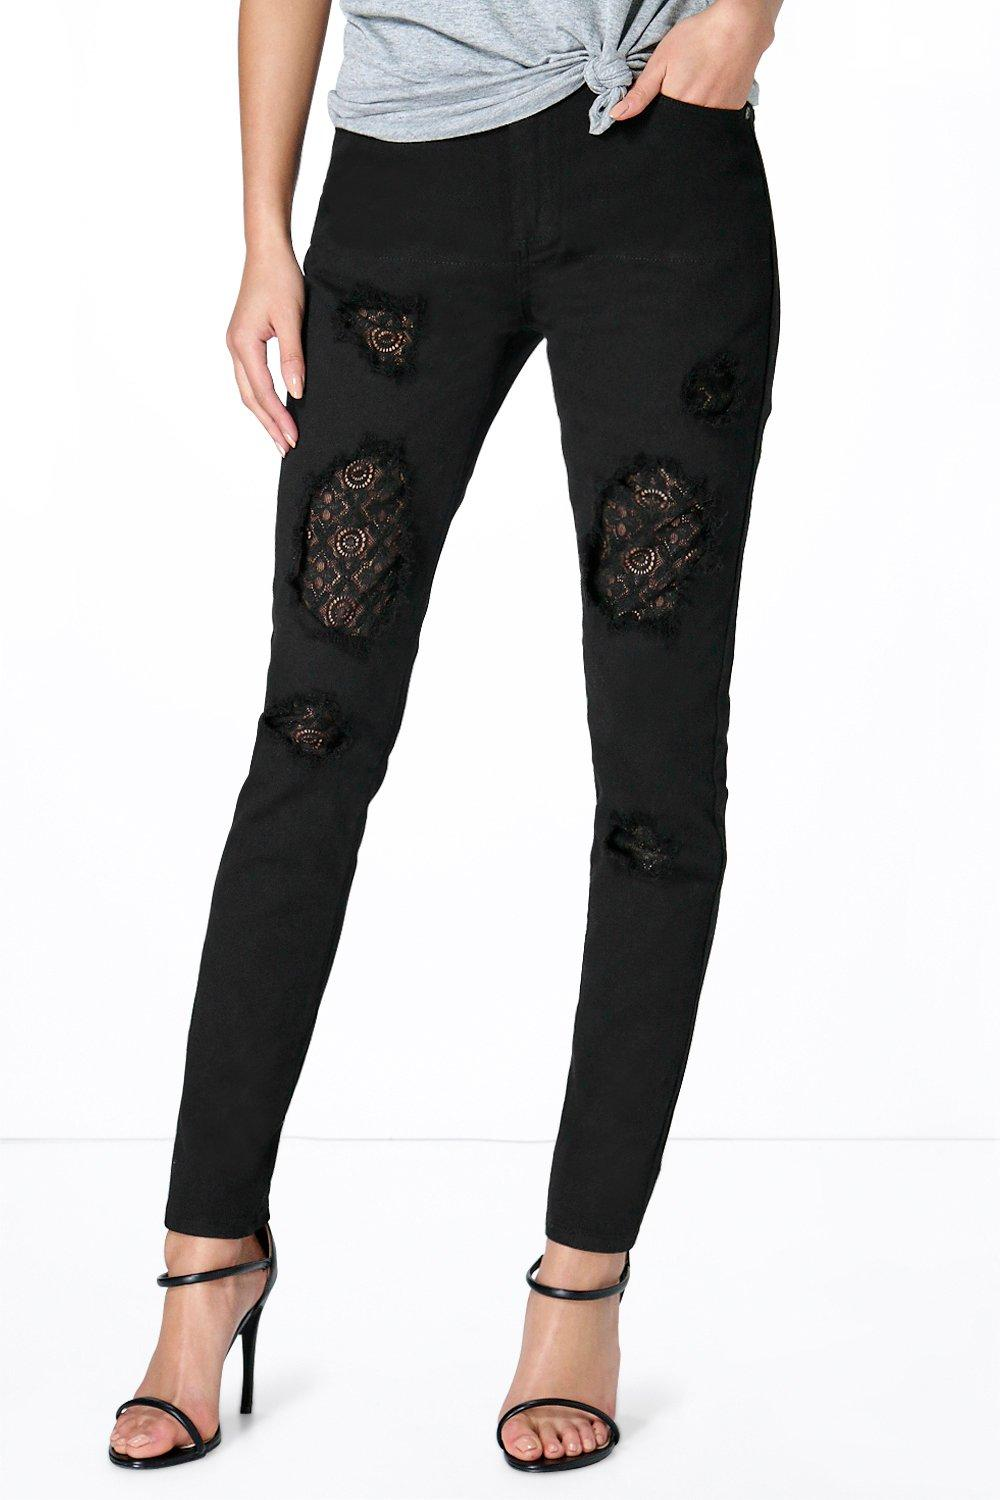 Rita Low Rise Lace Insert Skinny Jeans